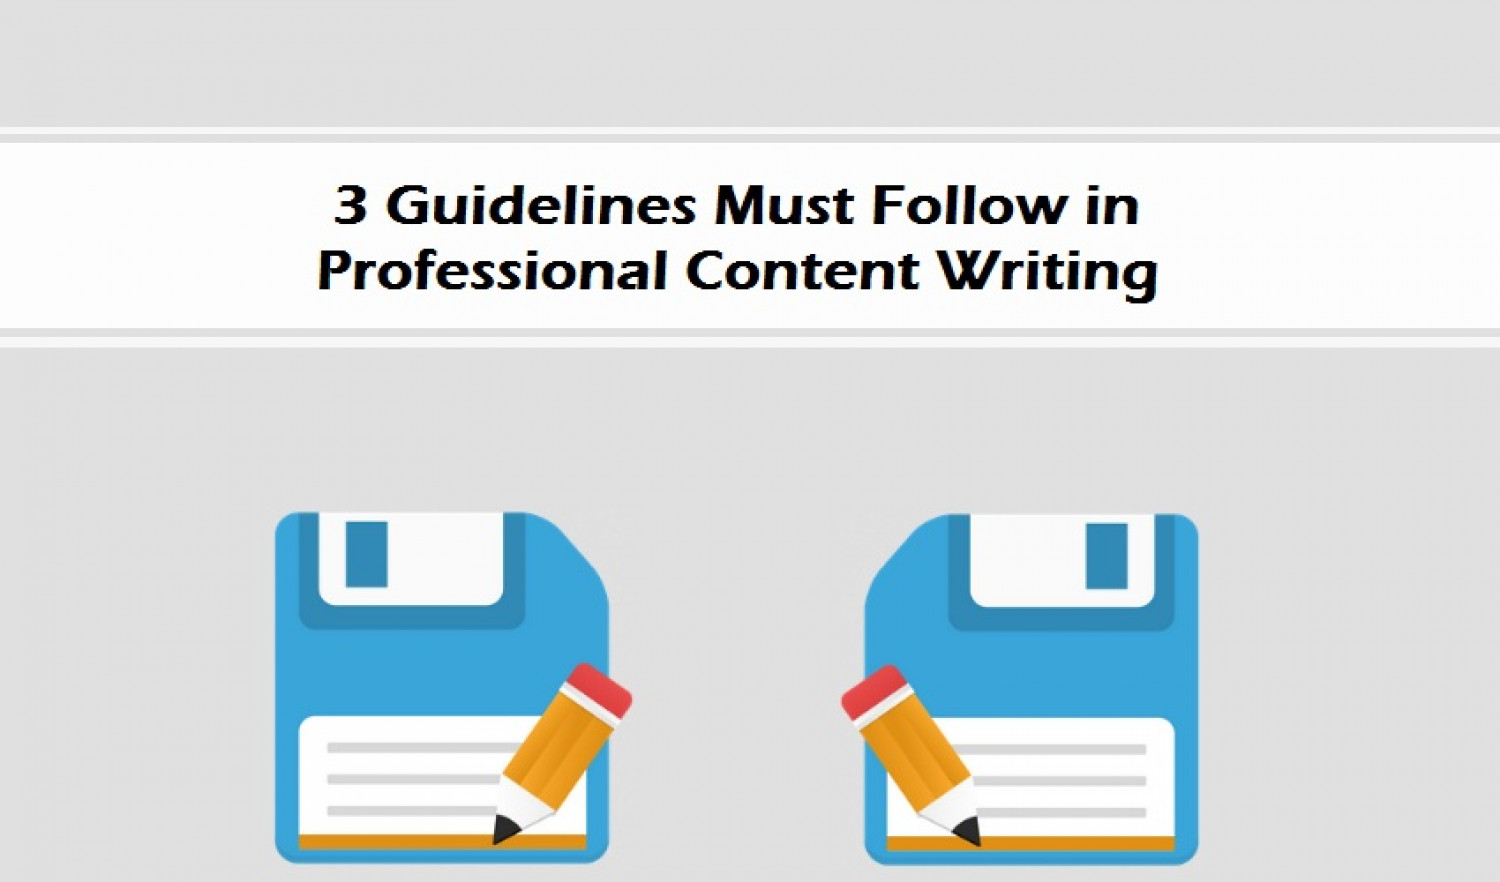 3 Guidelines Must Follow in Professional Content Writing  Infographic